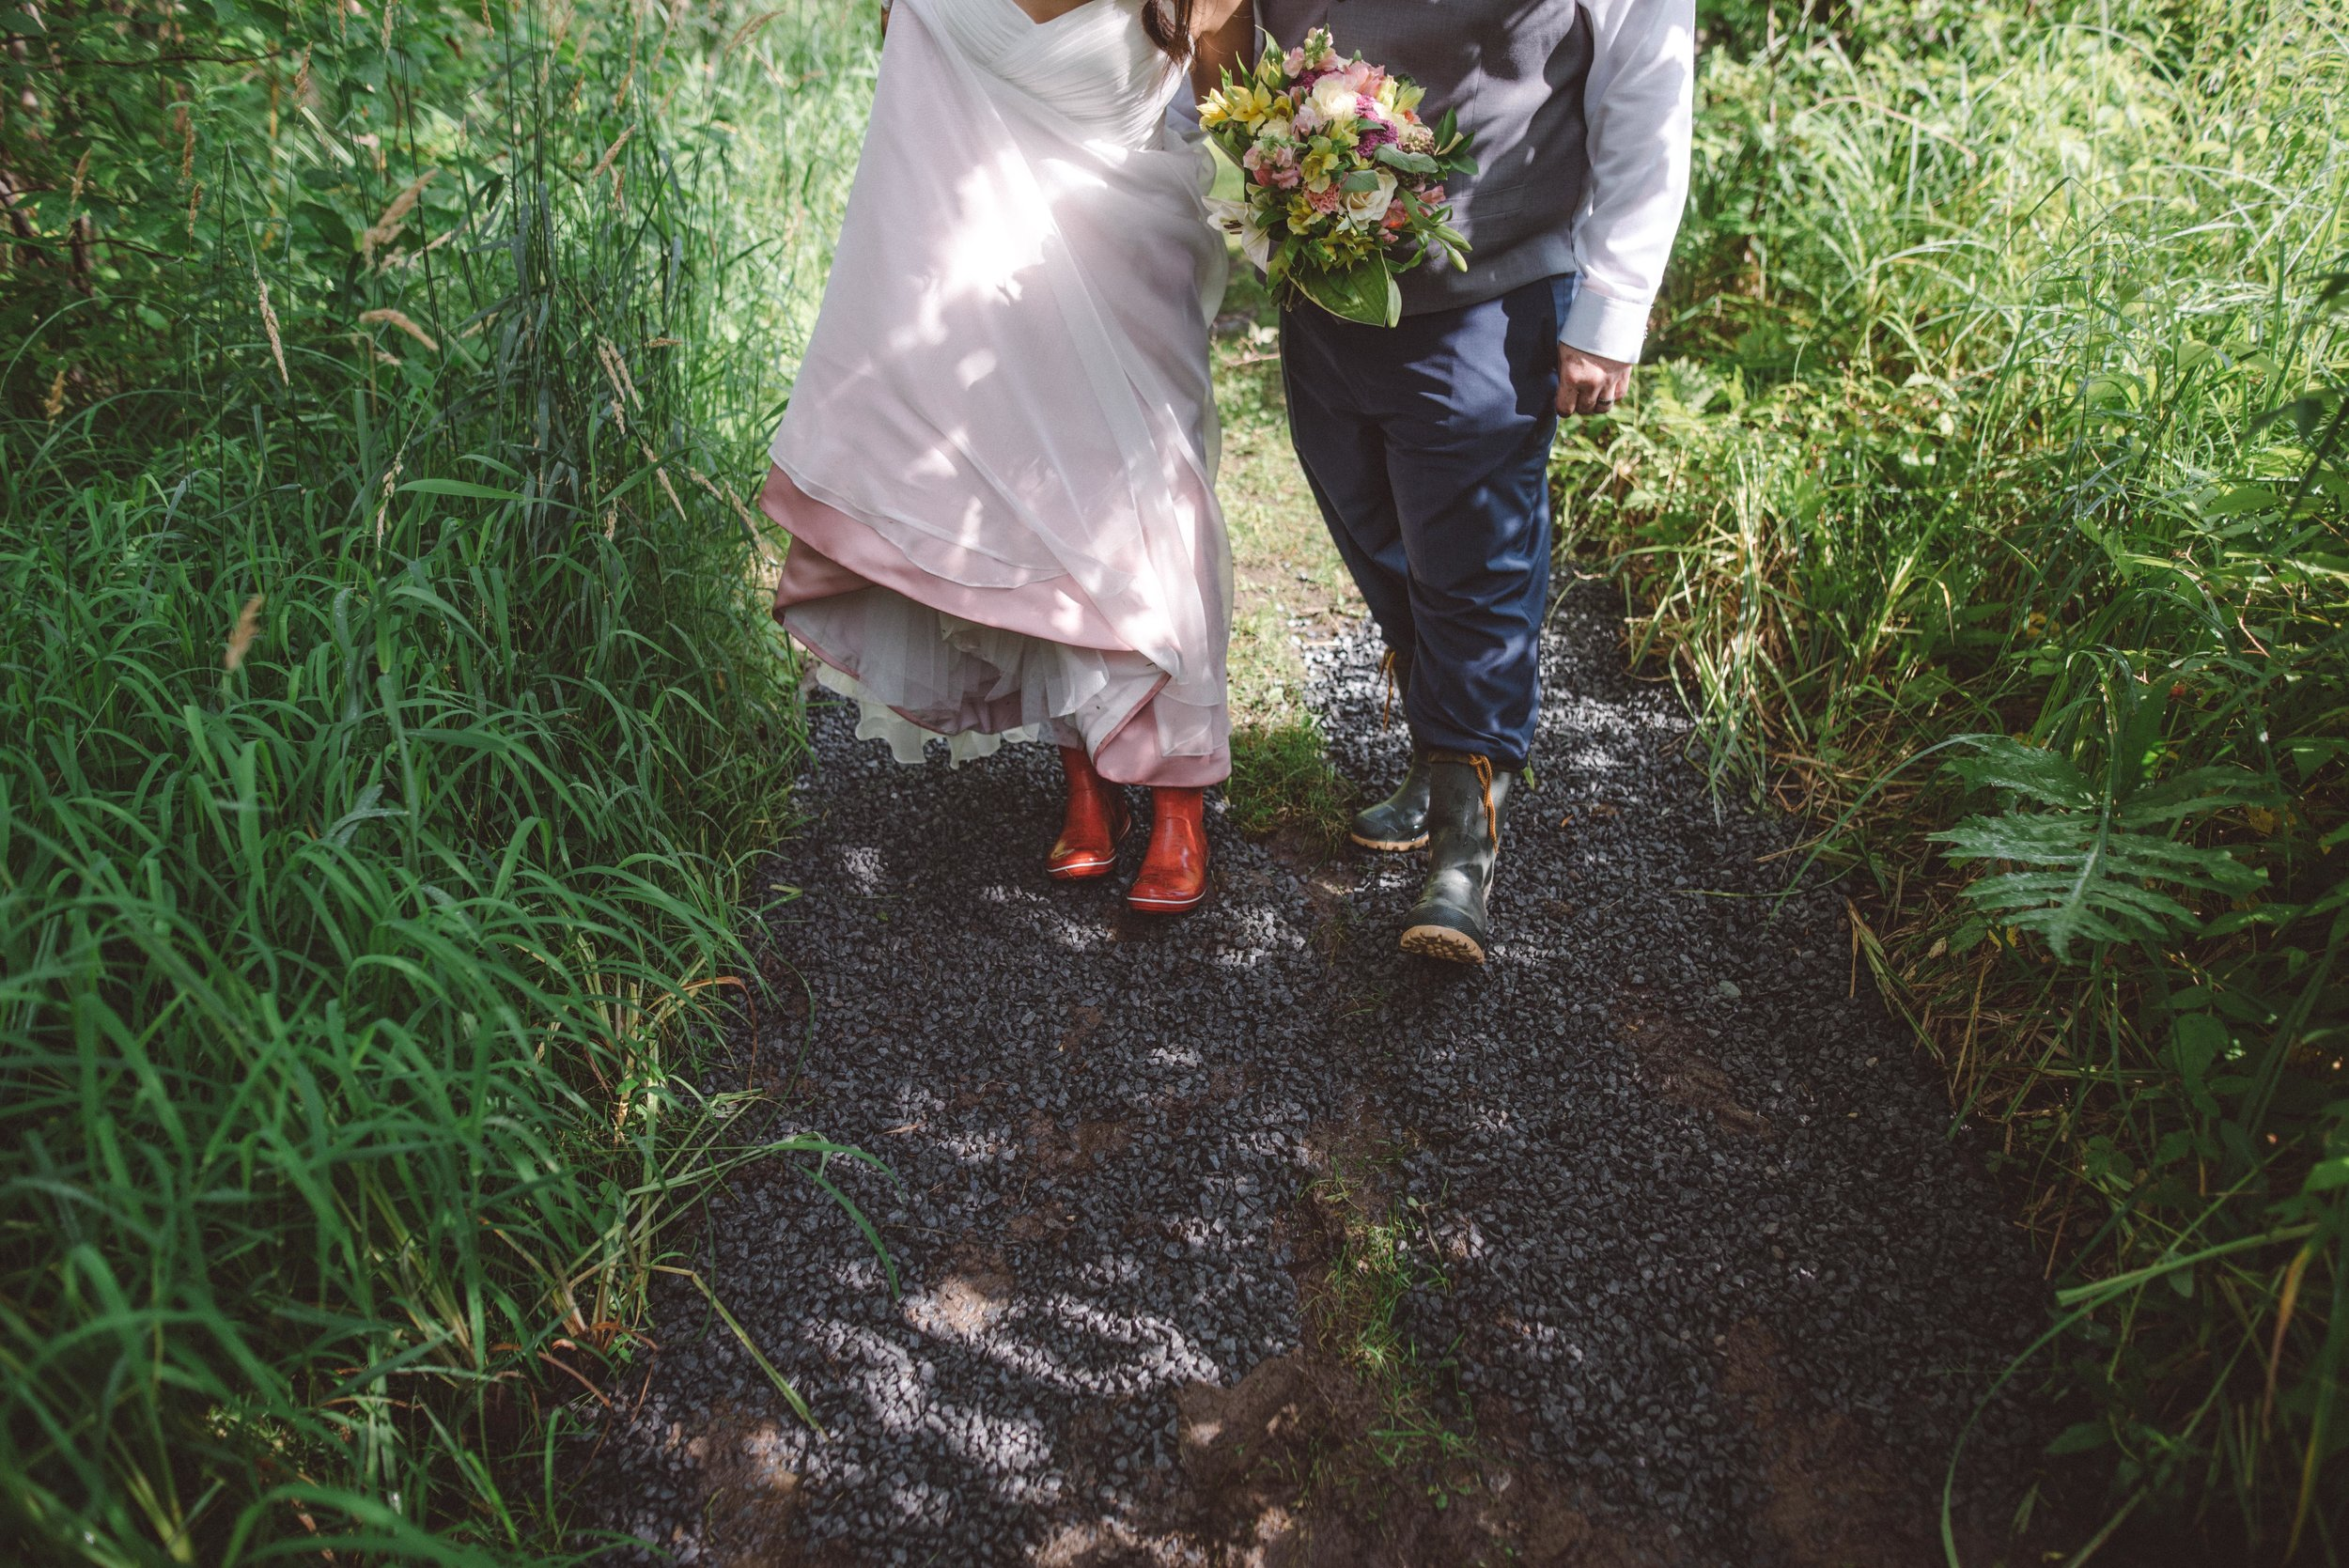 ottawa_wedding_photographer_mariage_gatineau_photographe-58.jpg